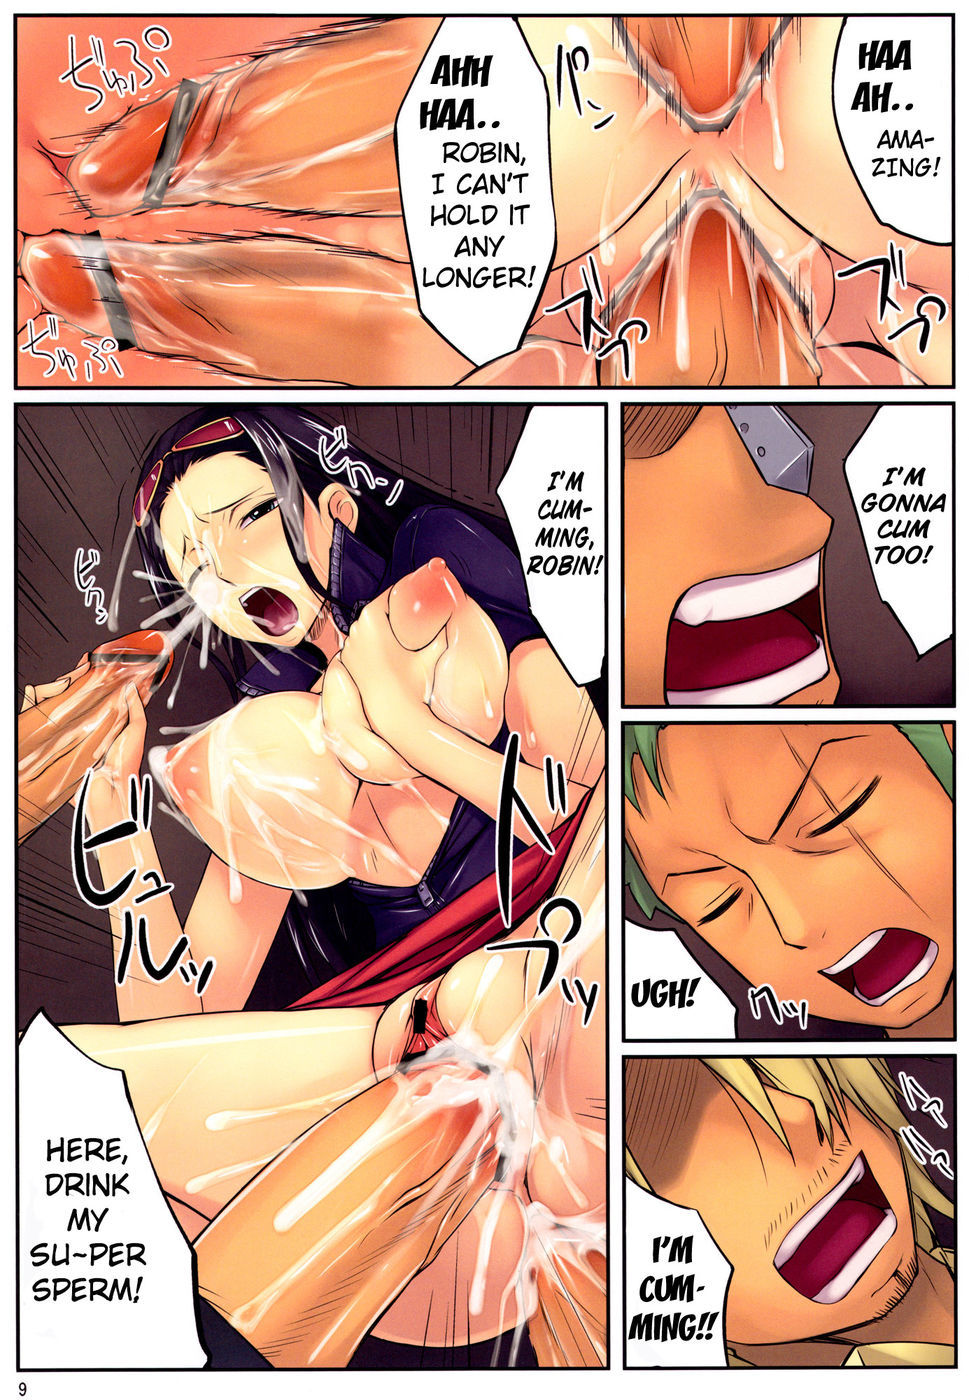 (C82) [Tenburi (Amei Sumeru)] ROB (One Piece)  {doujin-moe.us}